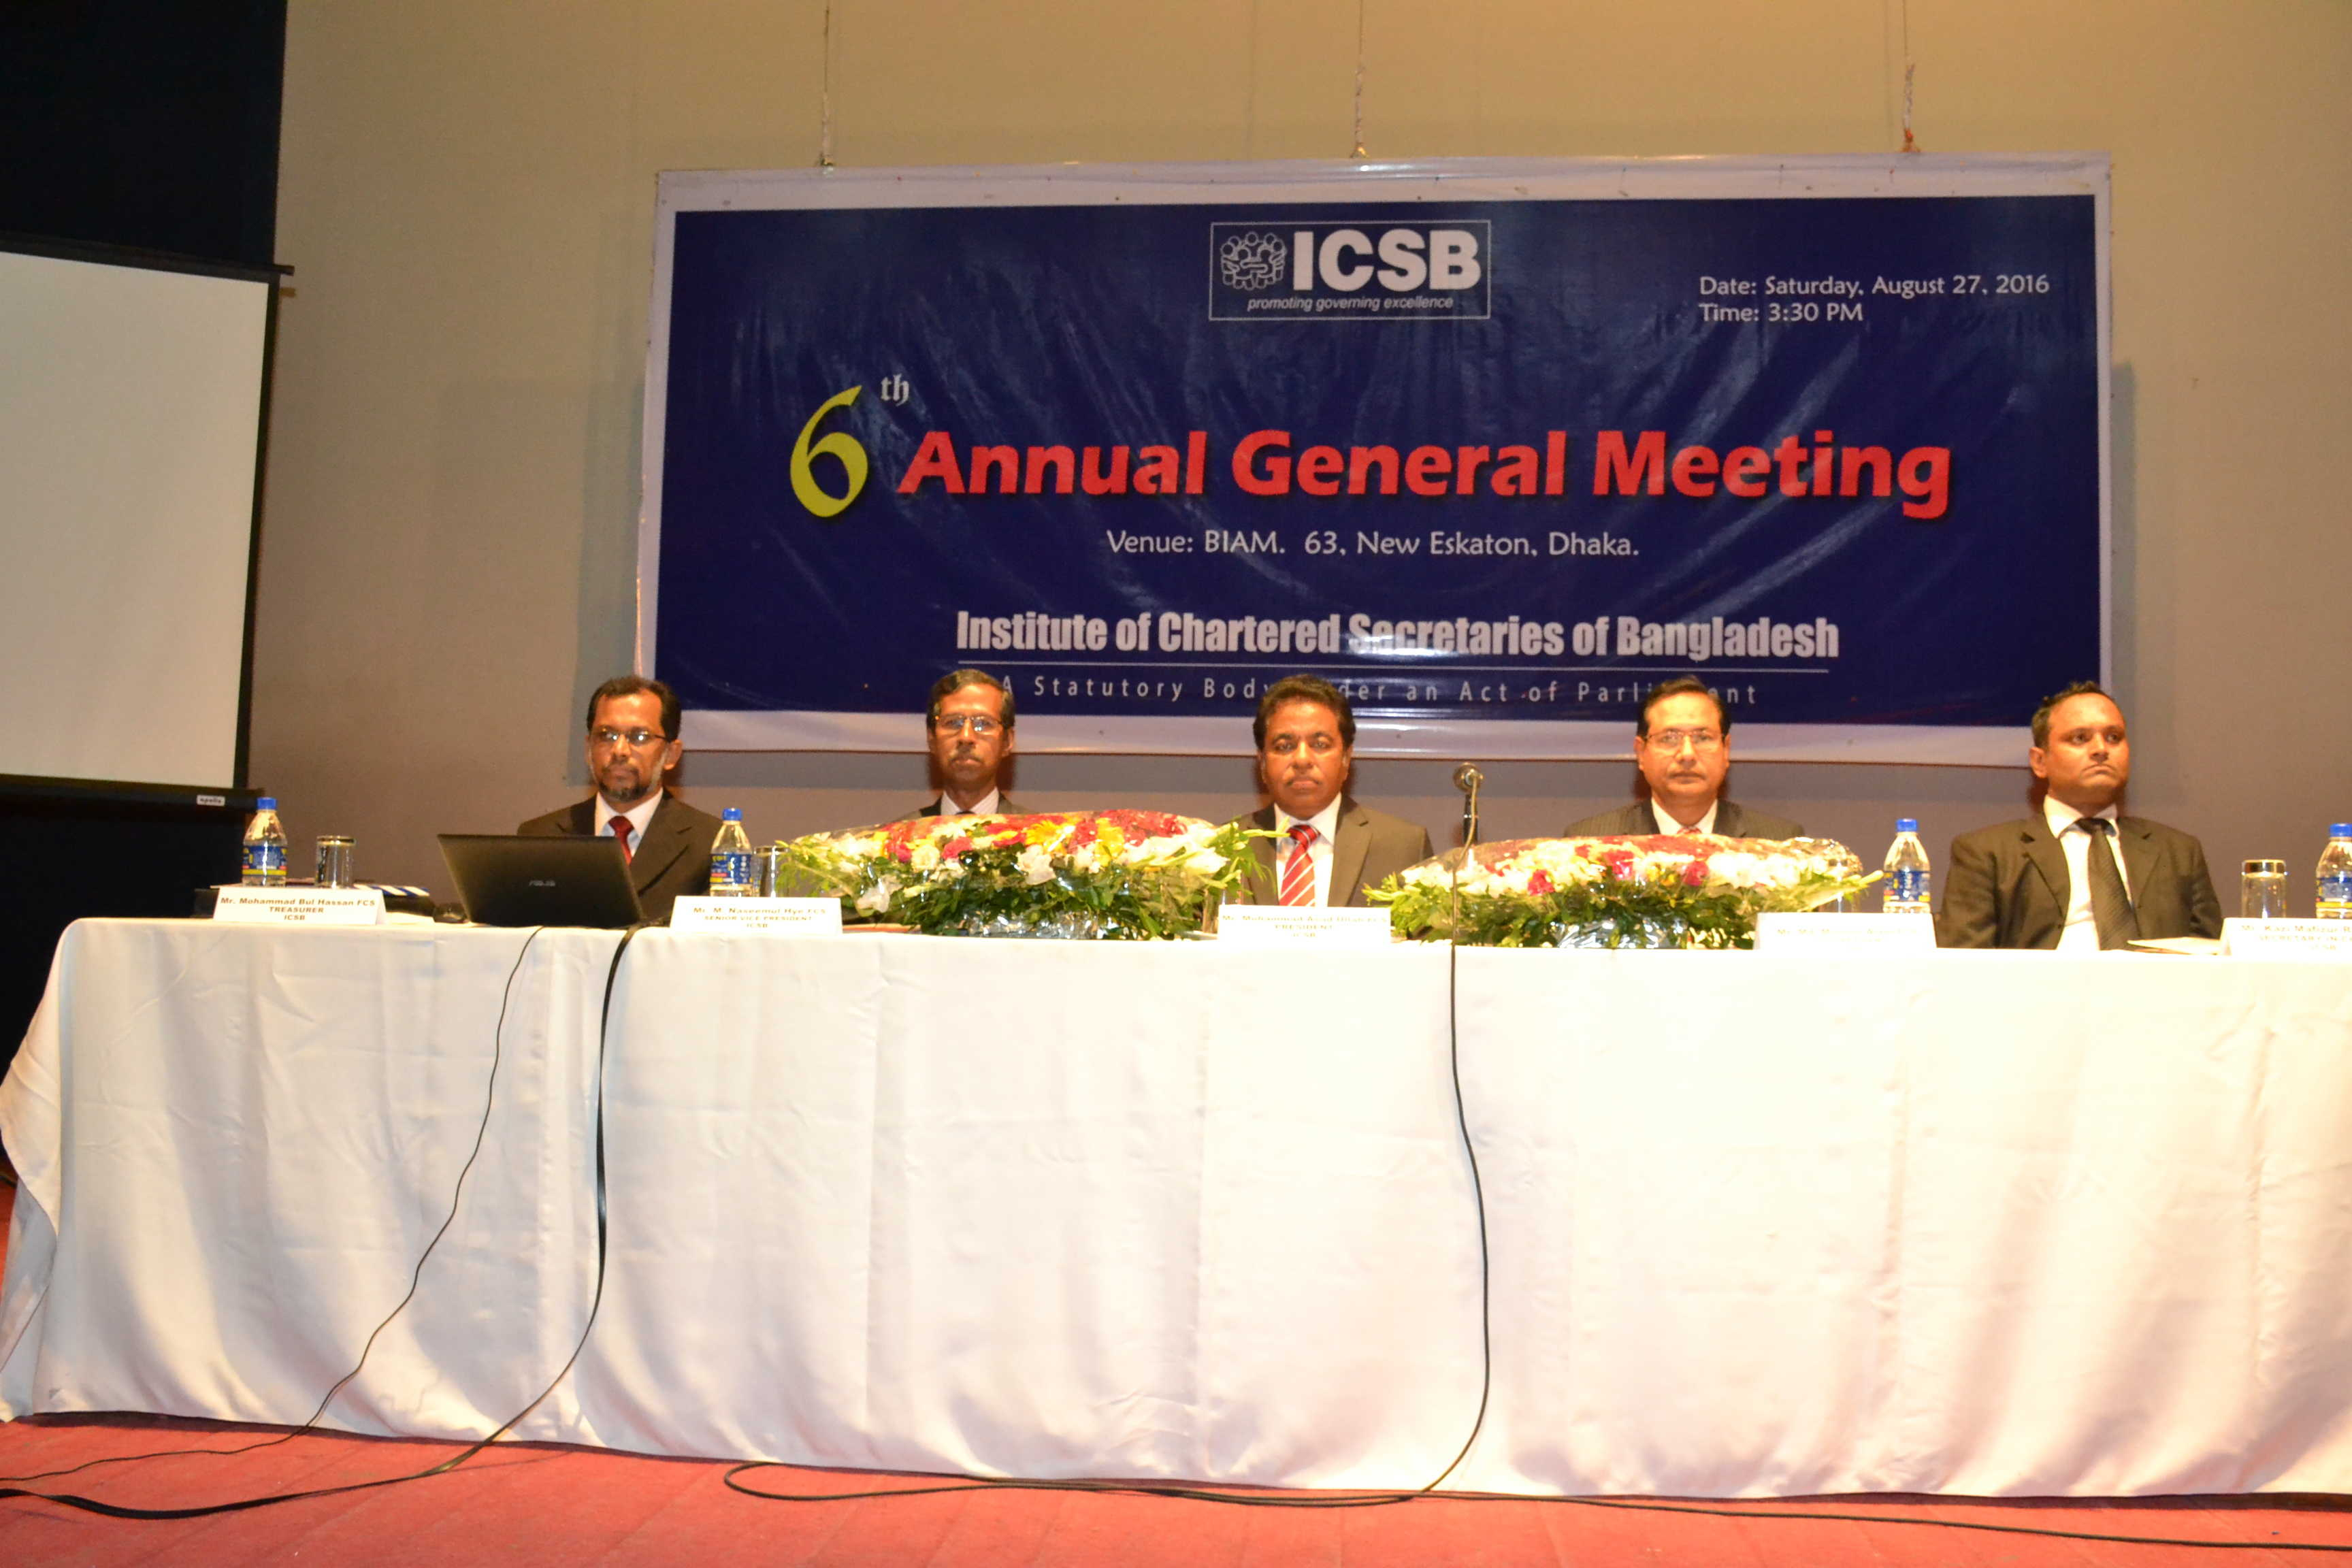 6th Annual General Meeting & 3rd Election to the Council of Institute of Chartered Secretaries (ICSB) held on